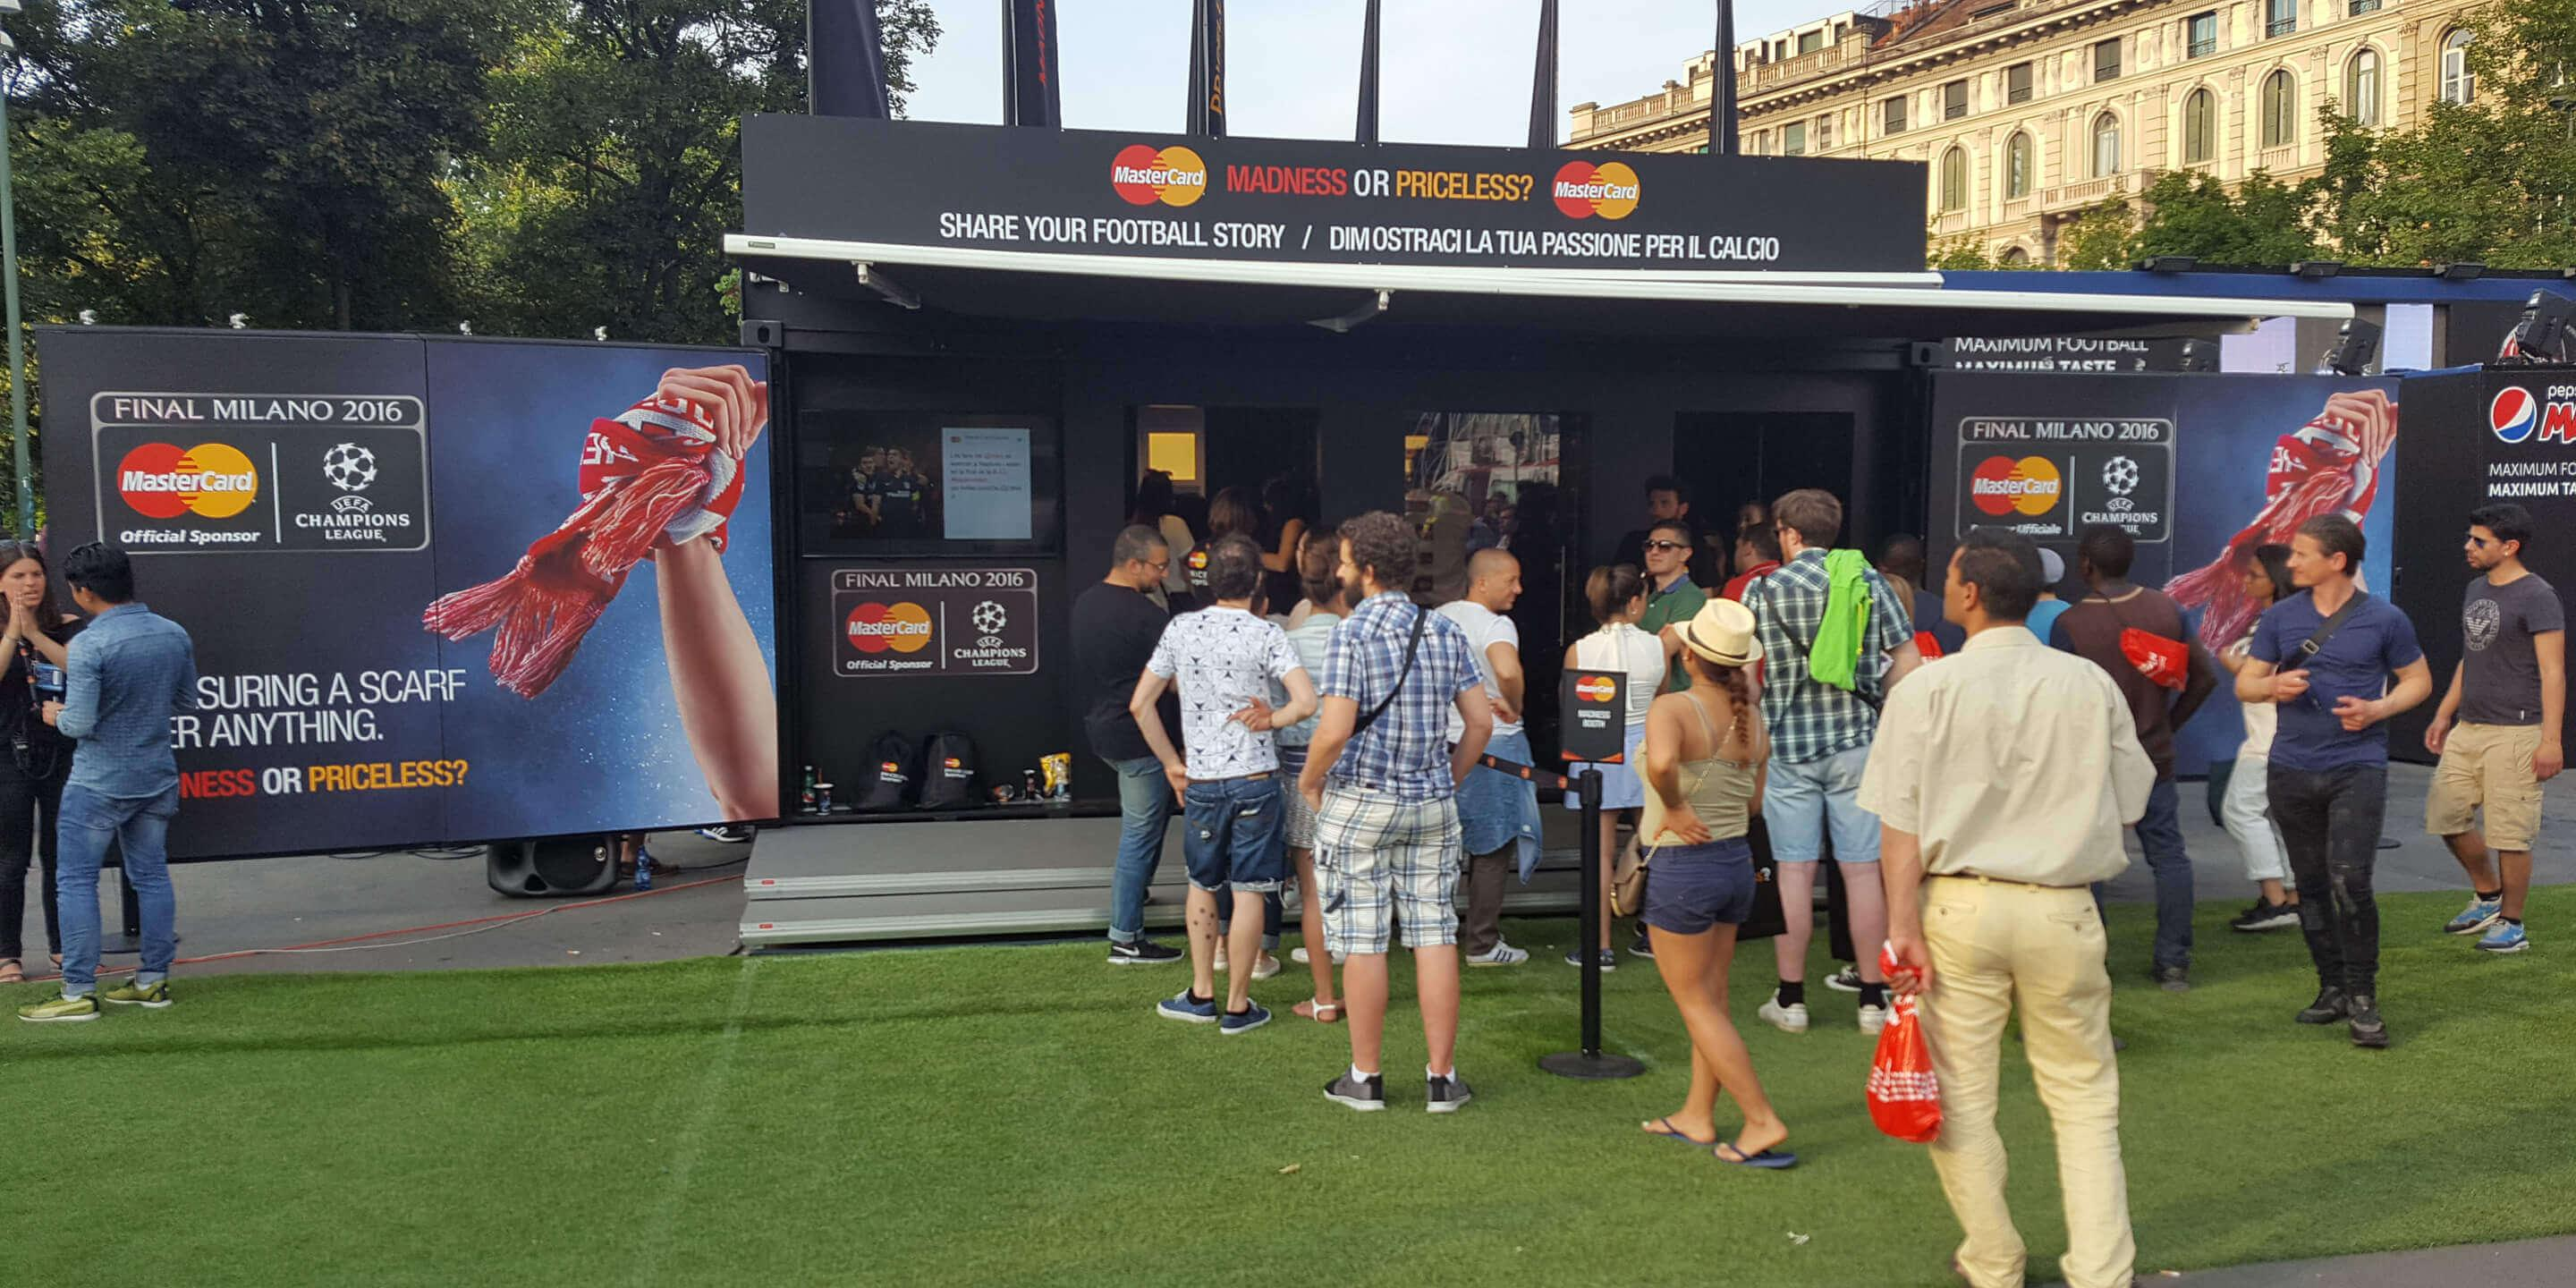 Event Shipping Containers: Studio Event Container for Mastercard UEFA Champions Activation